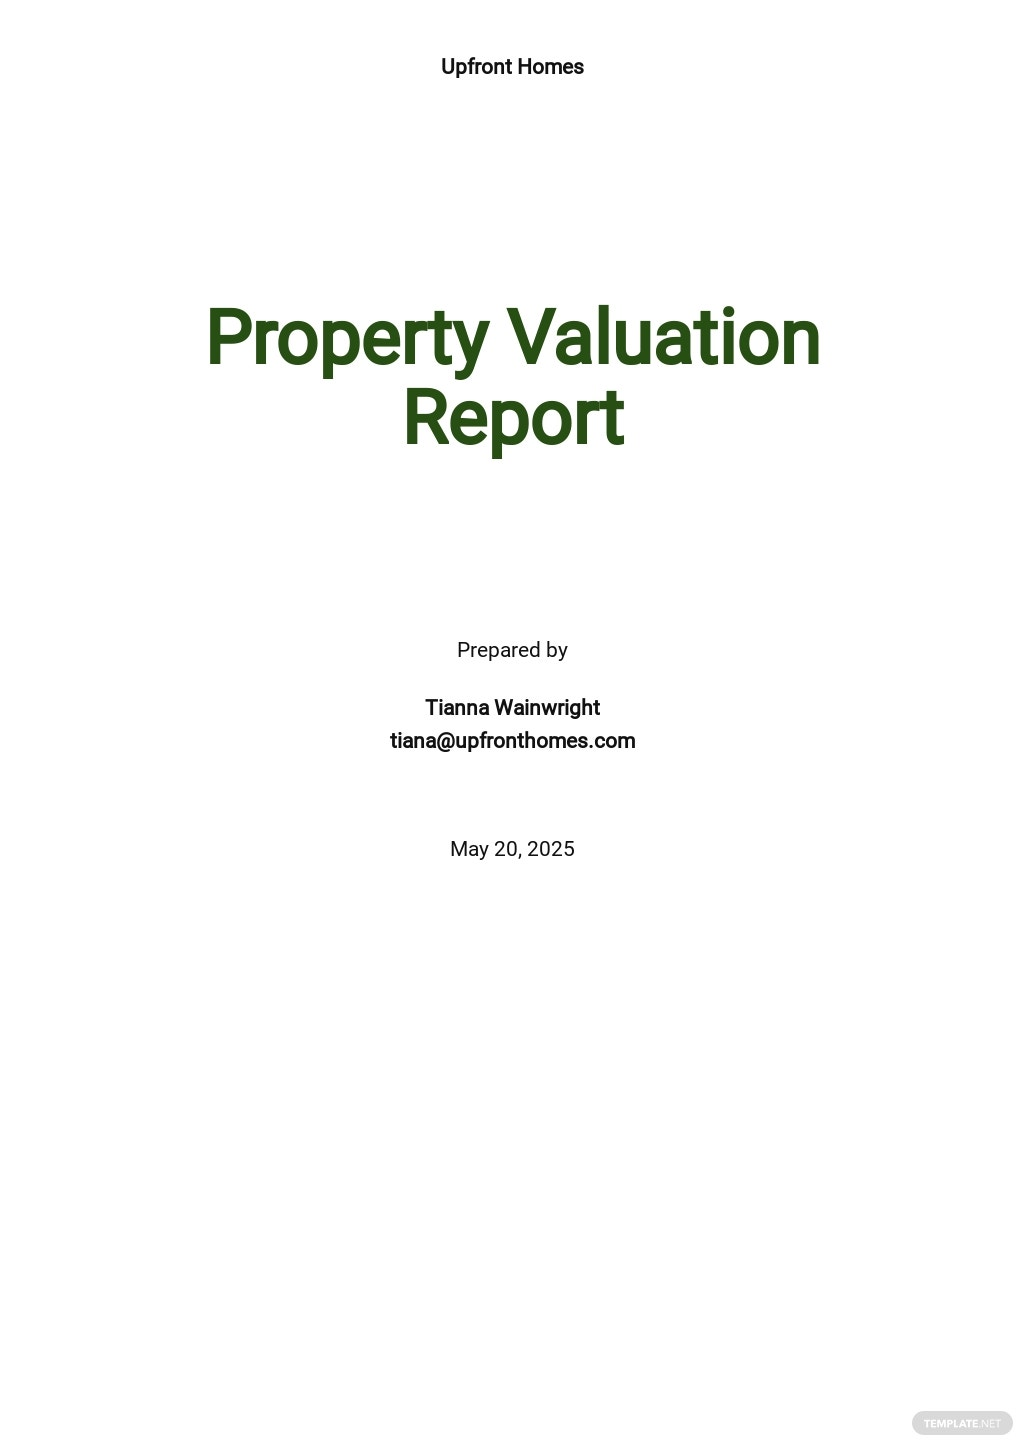 Property Valuation Report Template.jpe